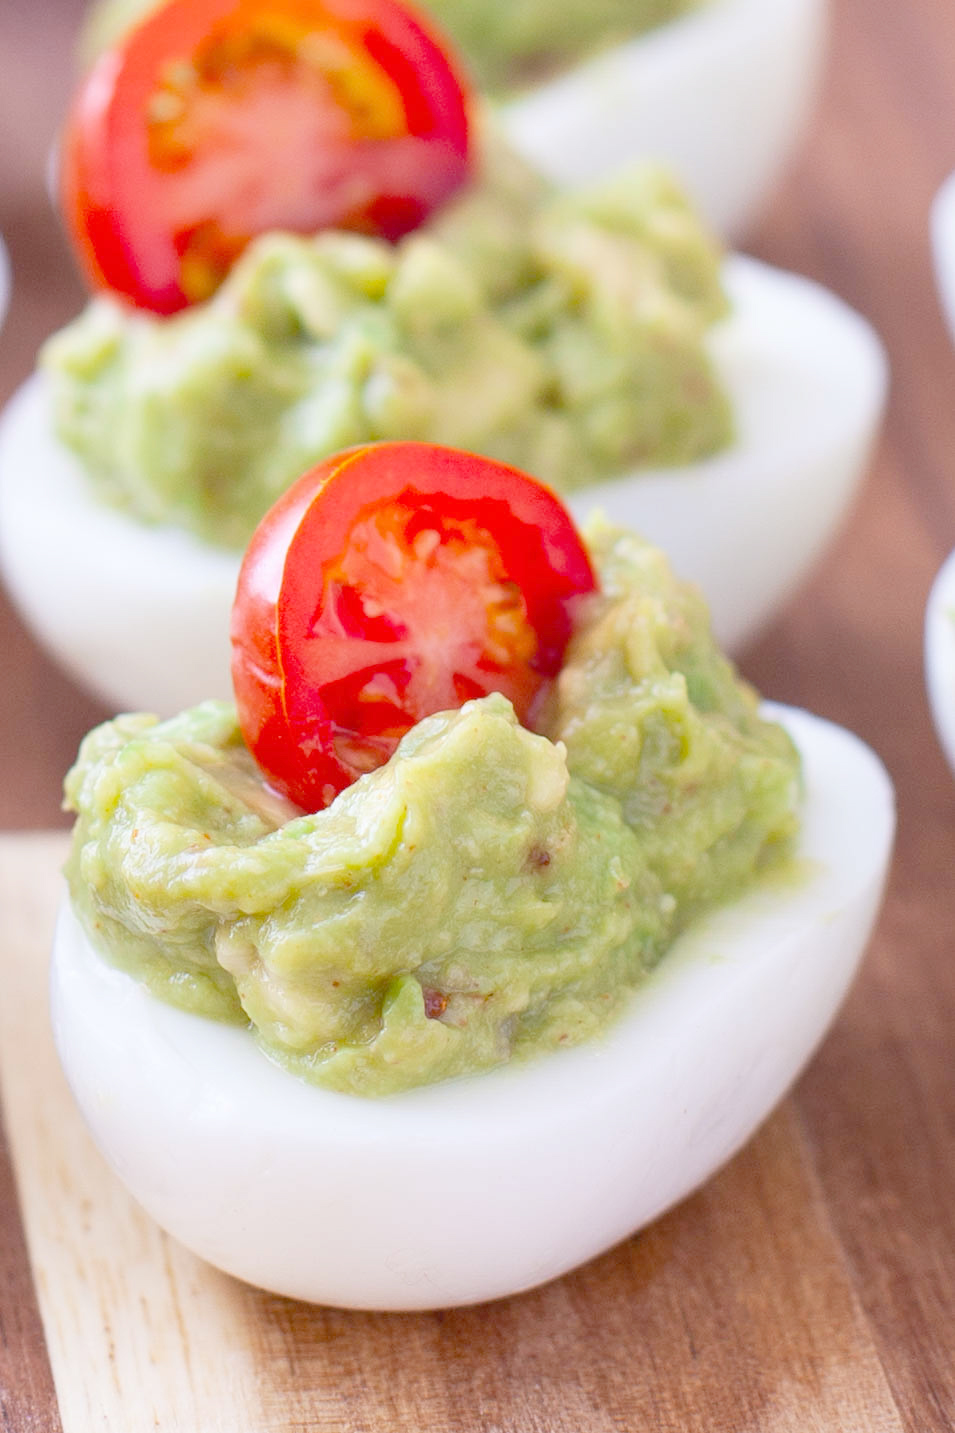 Guacamole Deviled Eggs with Tomato